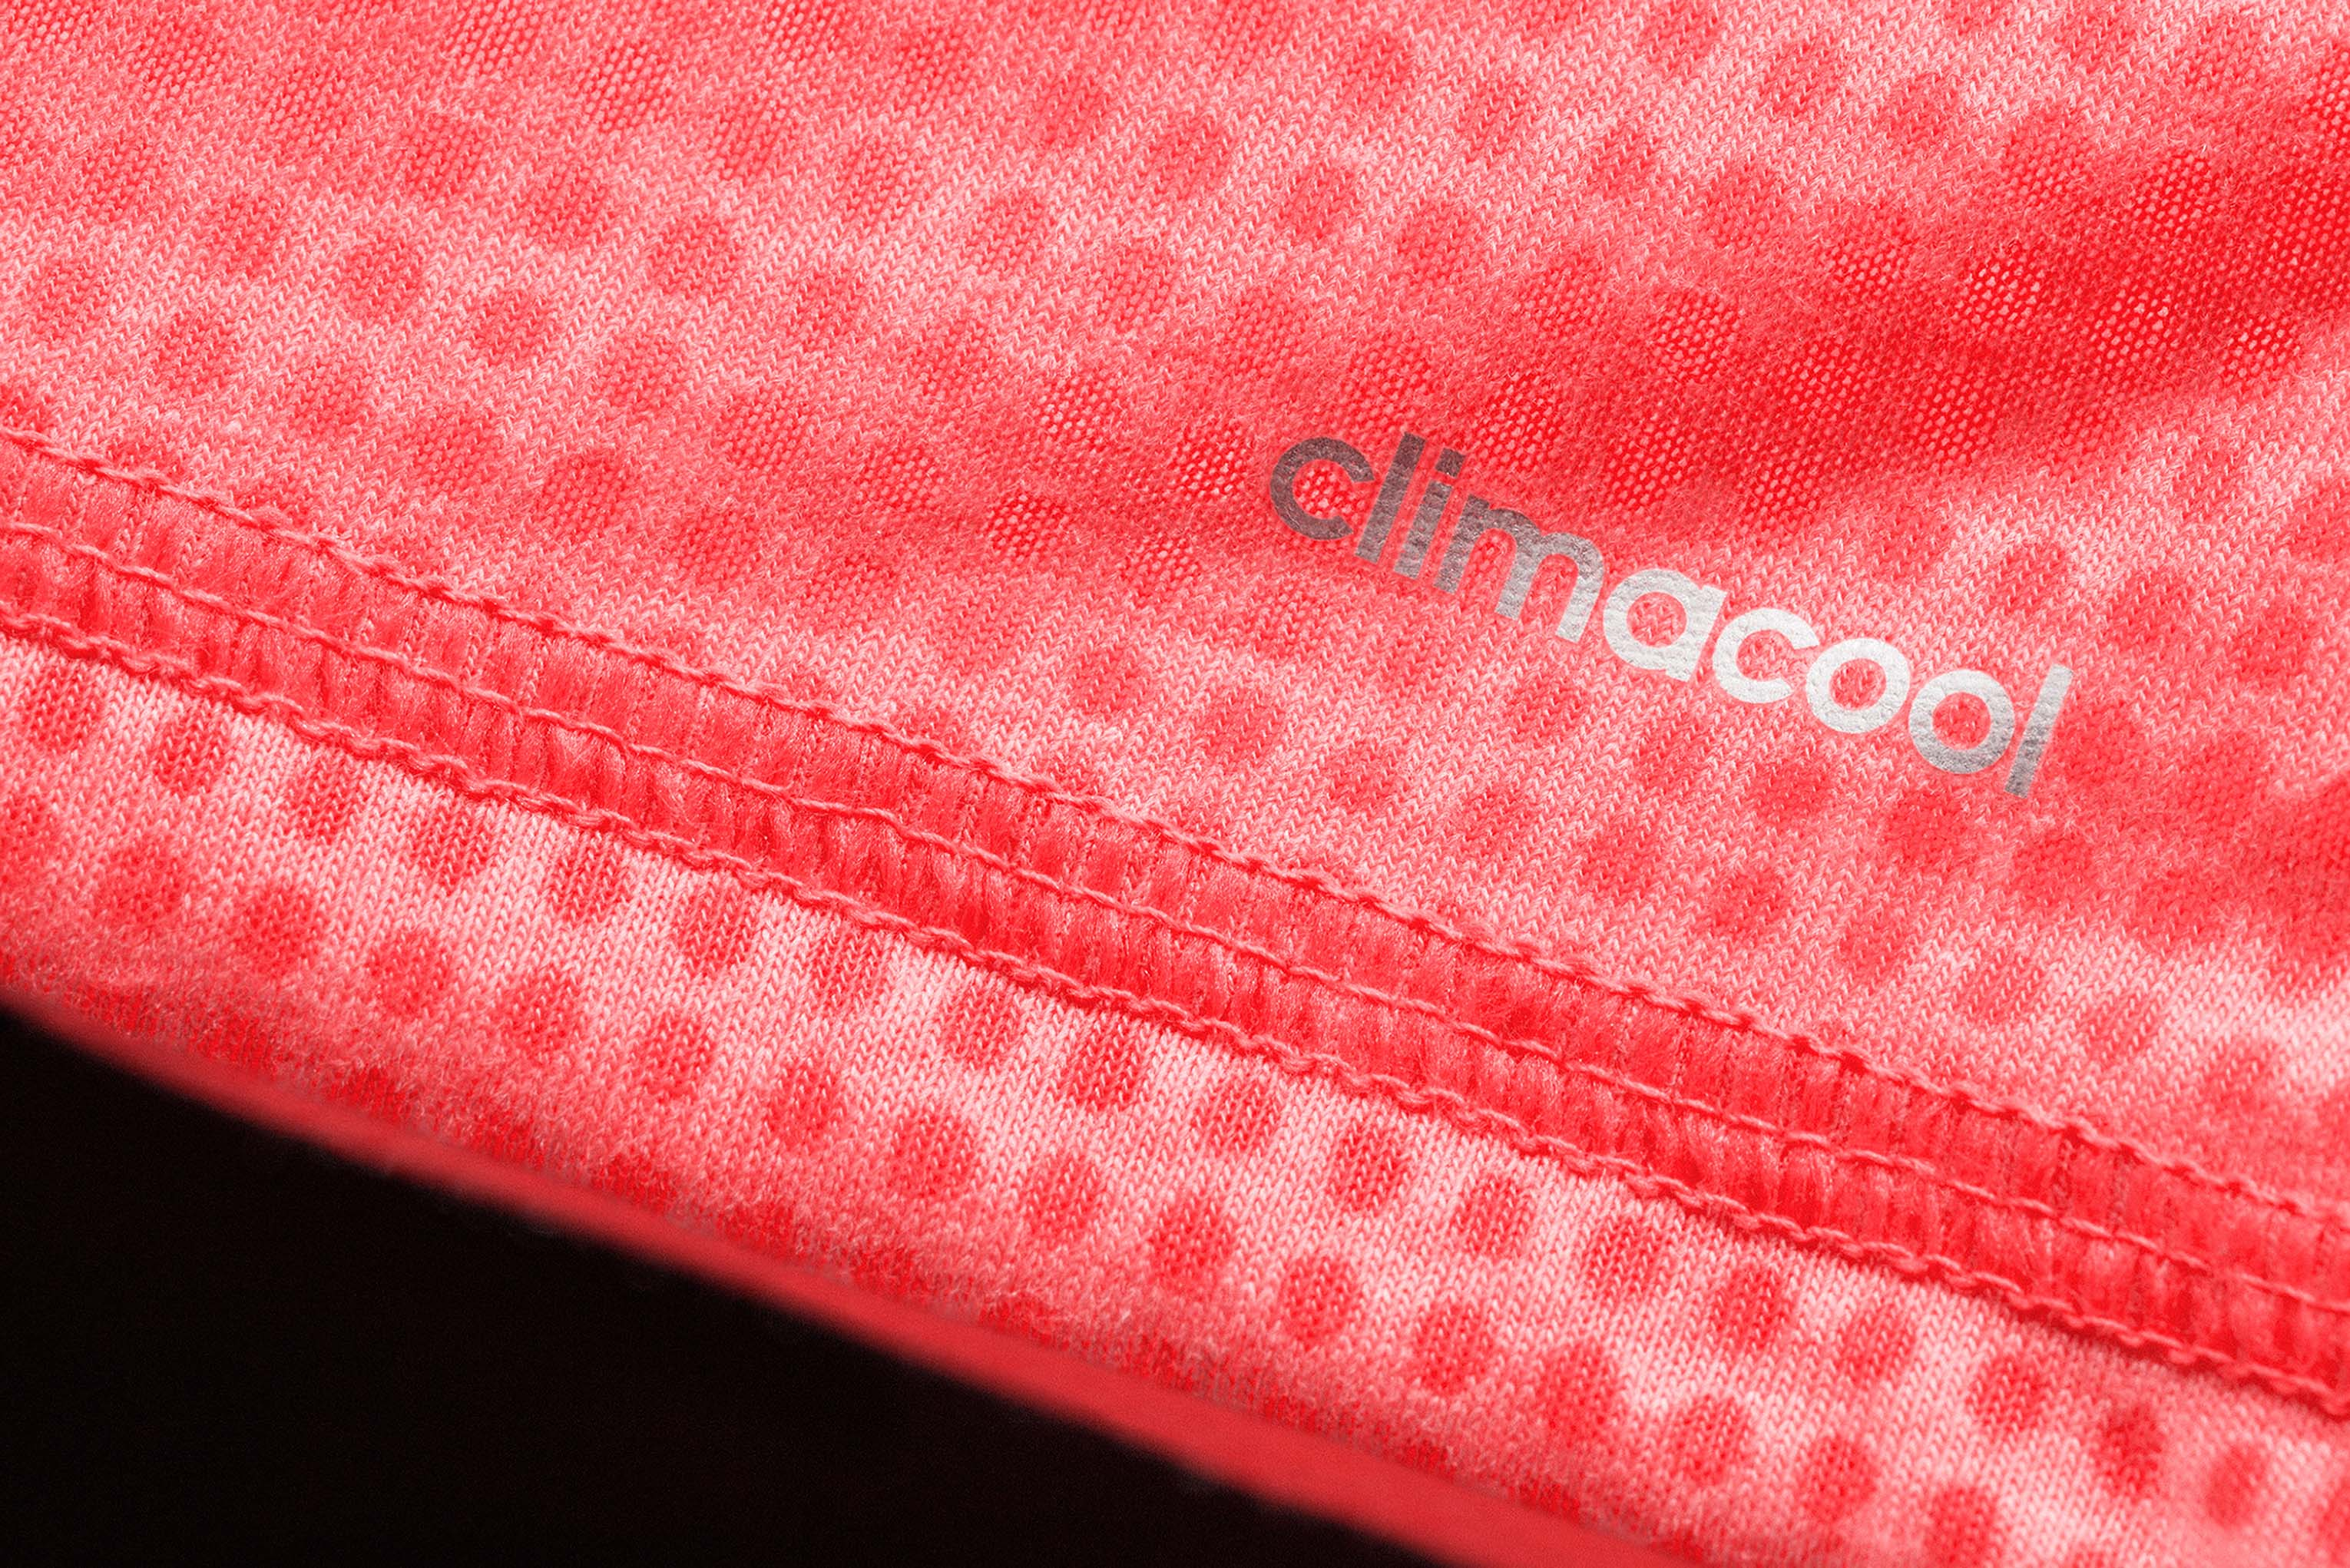 SS15_ClimaAero_US_F_Product_Details_03_1